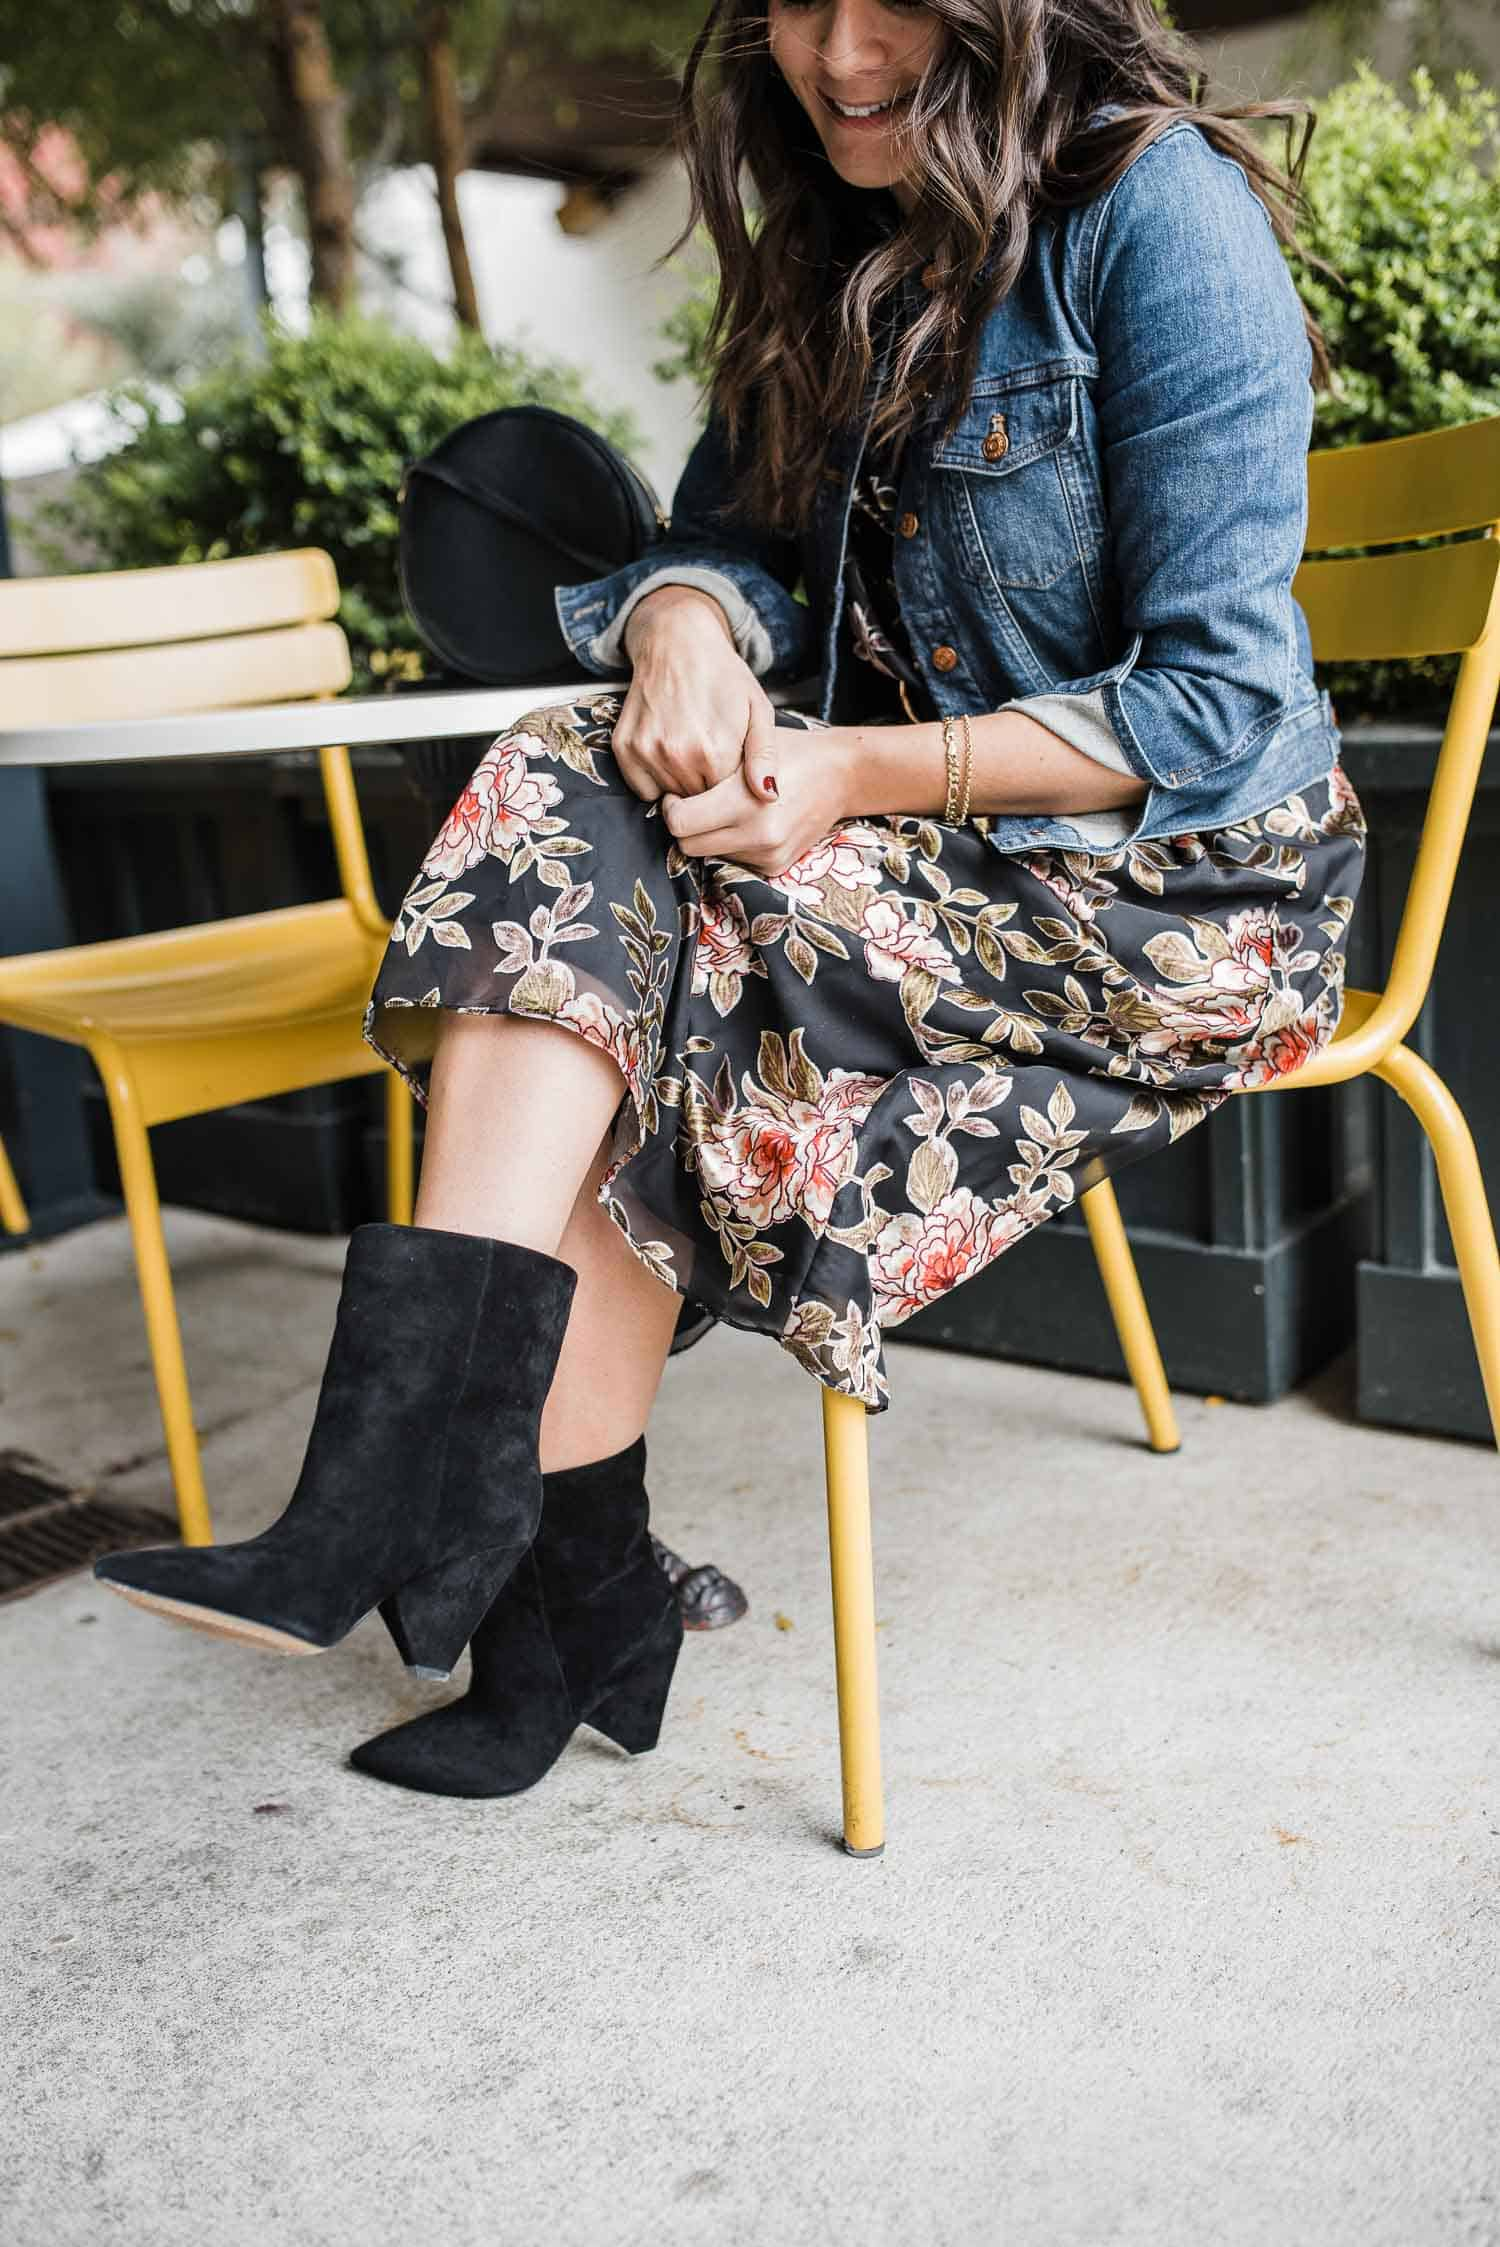 Vince Camuto Floral Dress • Vince Camuto Regina Boot • Madewell Jacket - My Style Vita